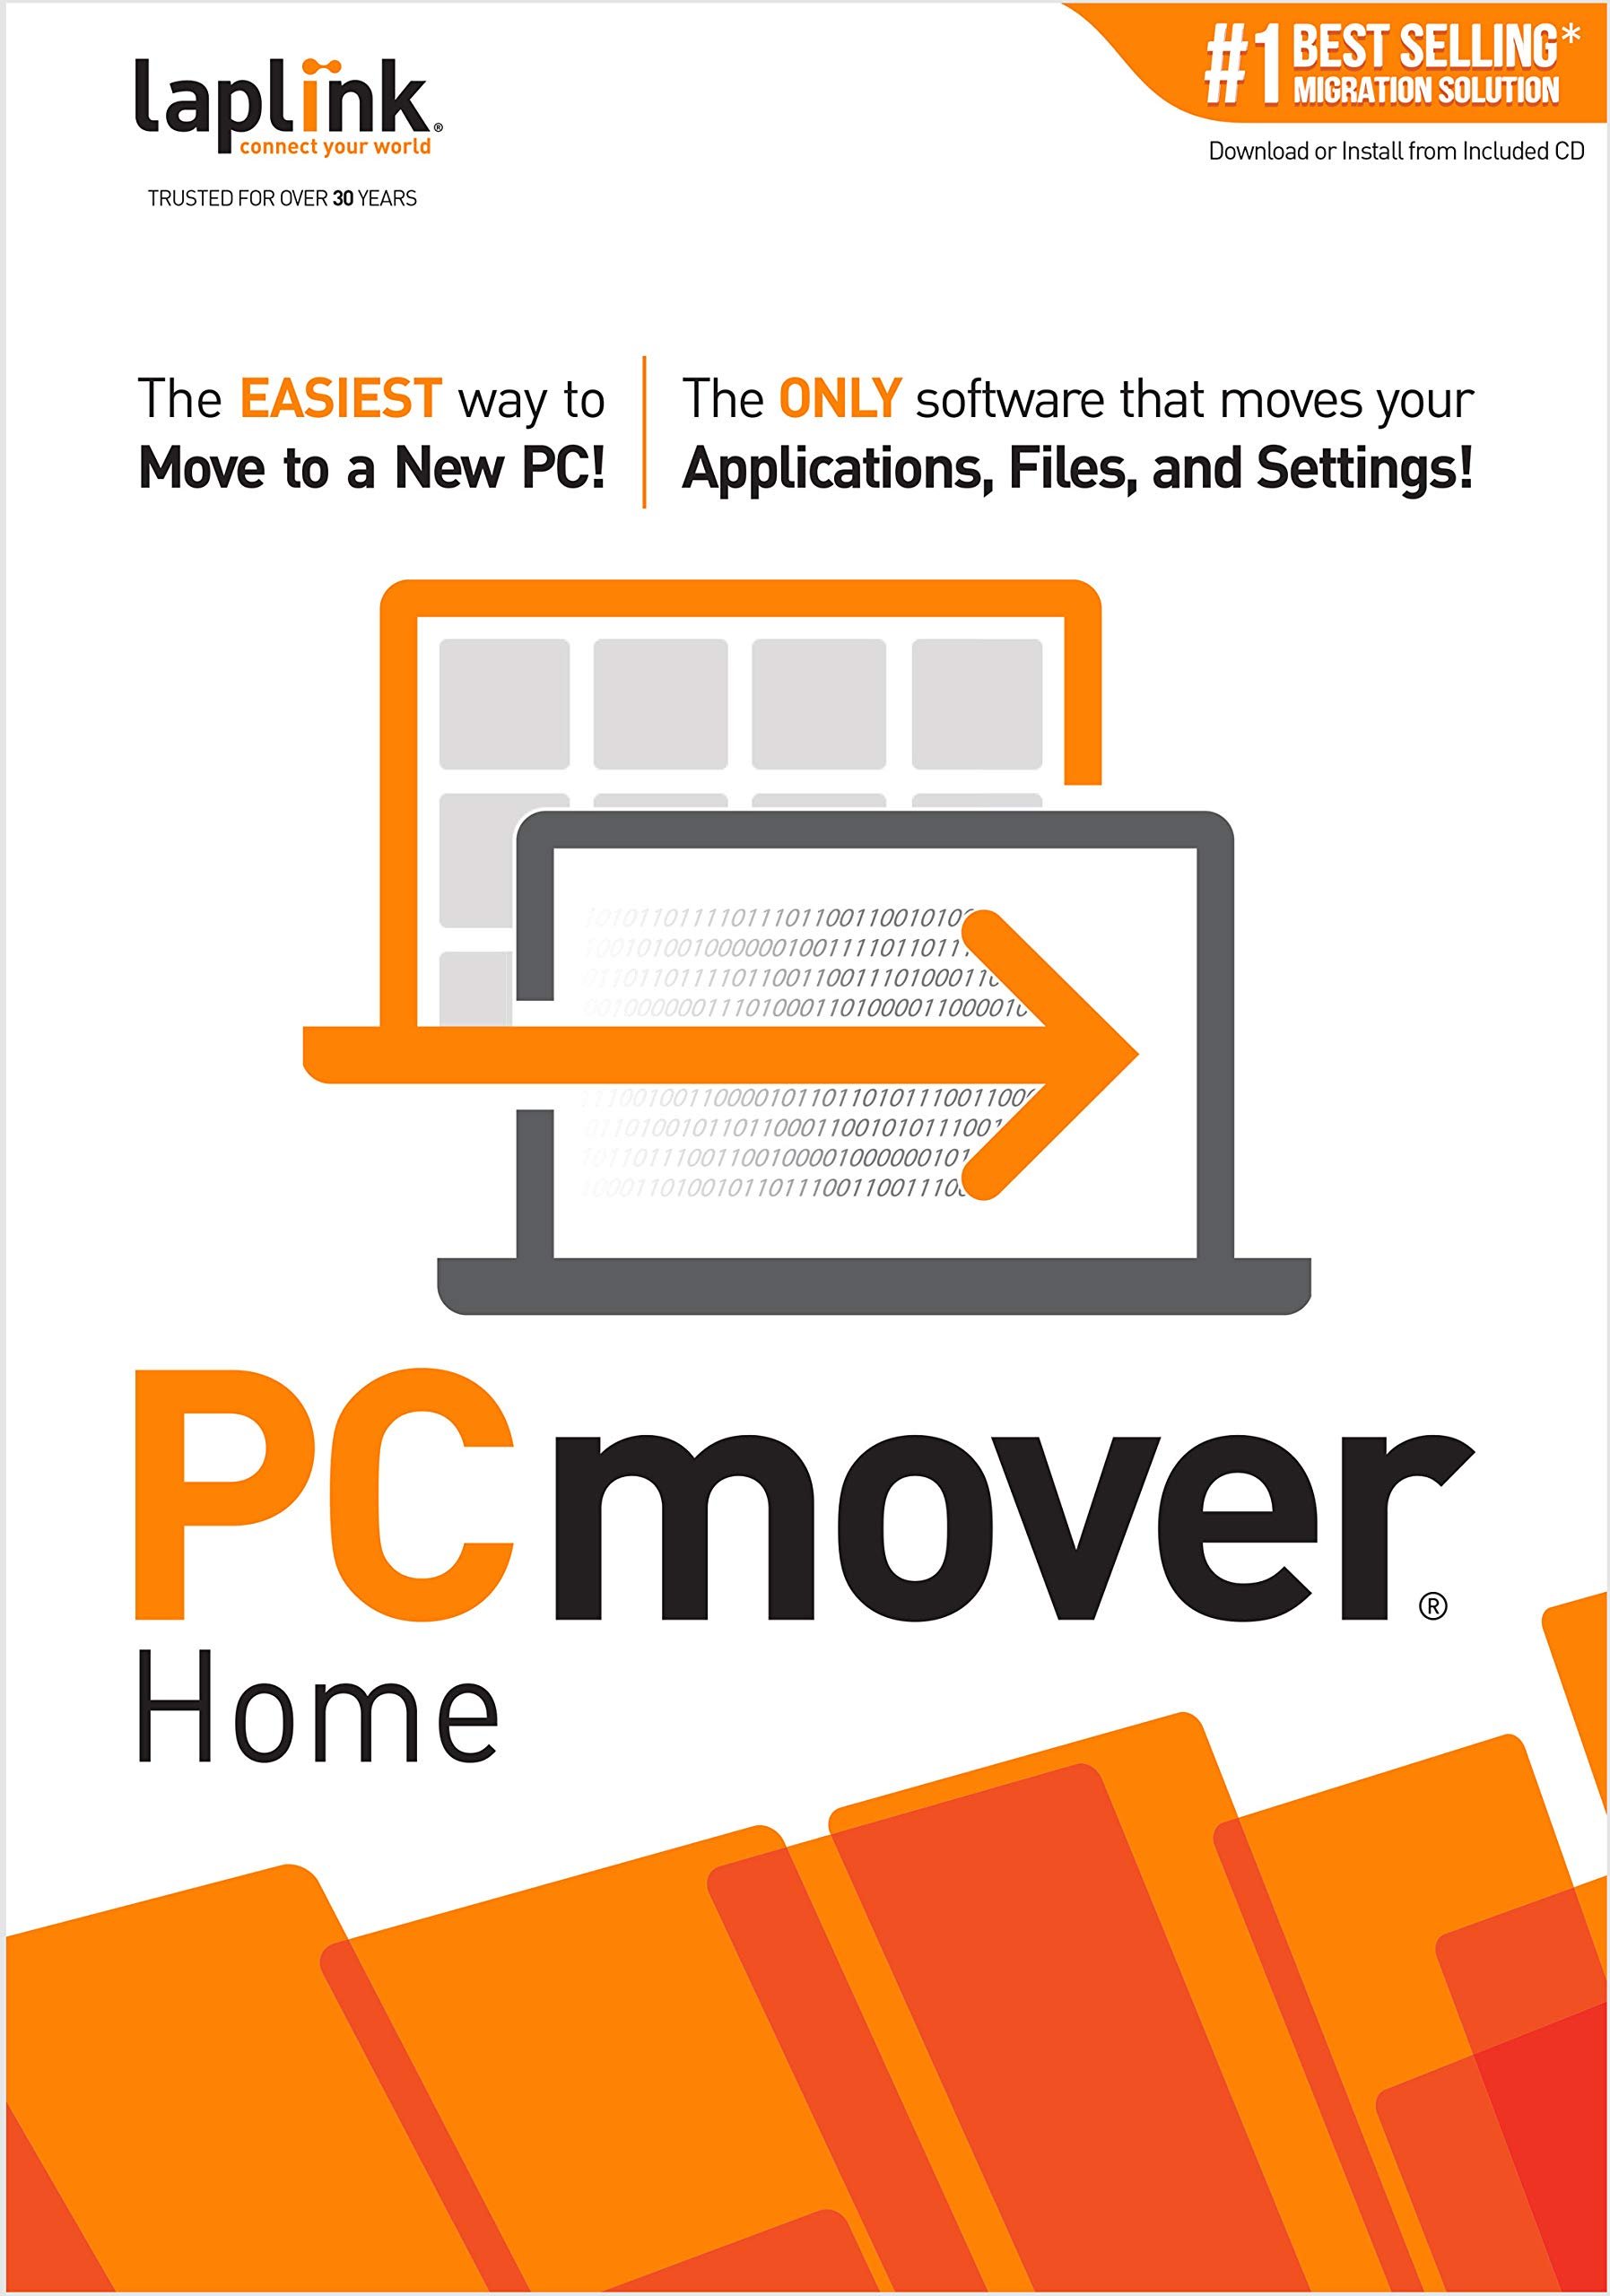 PCmover Home 11 (1 Use) [PC Download] by Laplink Software, Inc.